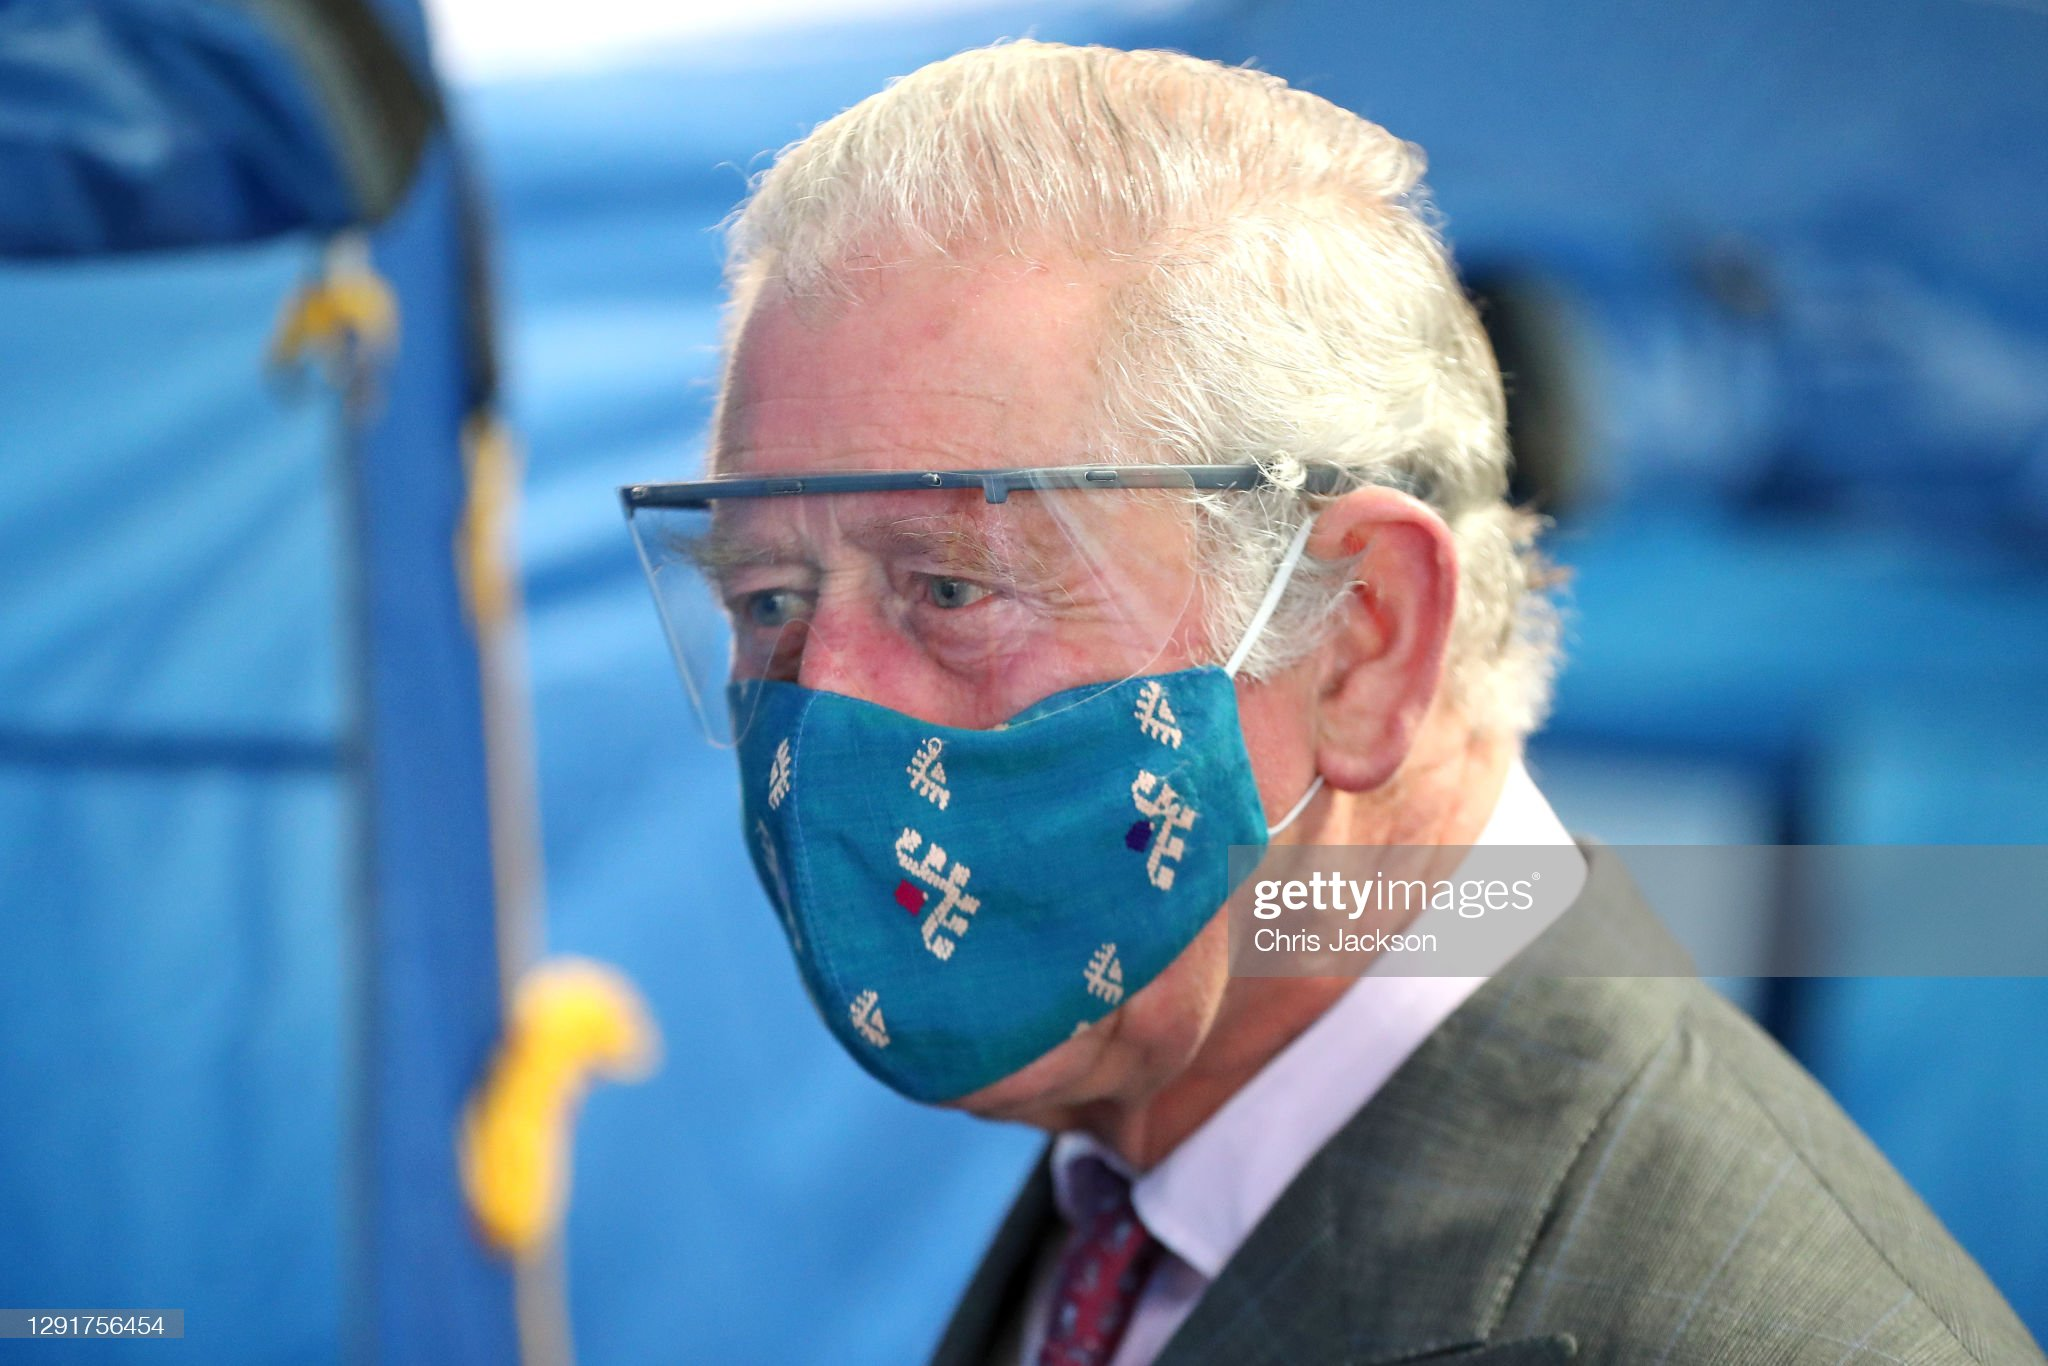 prince-charles-prince-of-wales-wearing-a-facemask-and-protective-a-picture-id1291756454